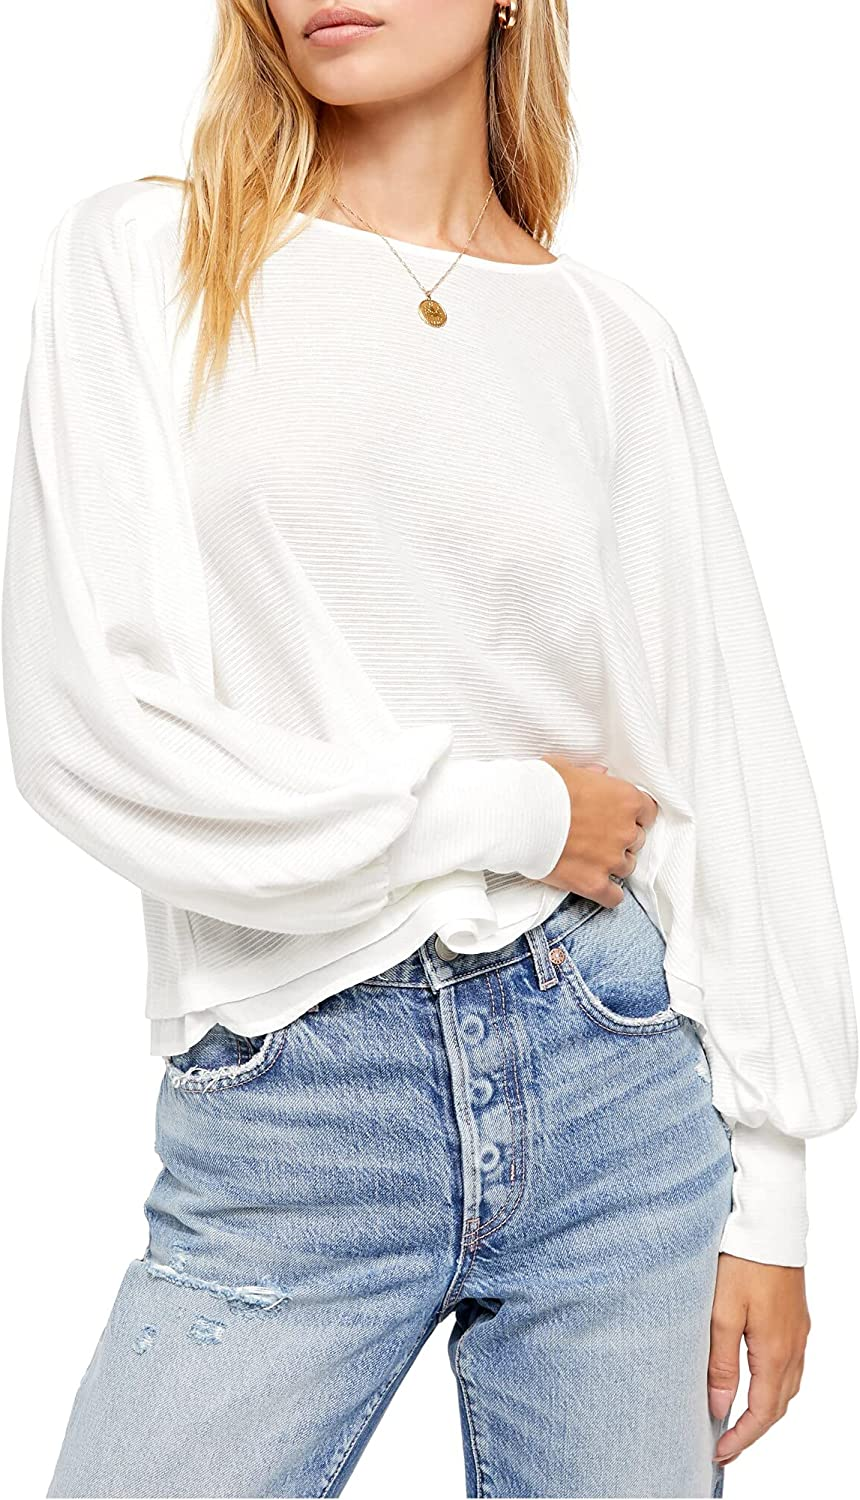 Max 46% OFF Free People Boston Mall Women's Billie Top Ivory - Size Small